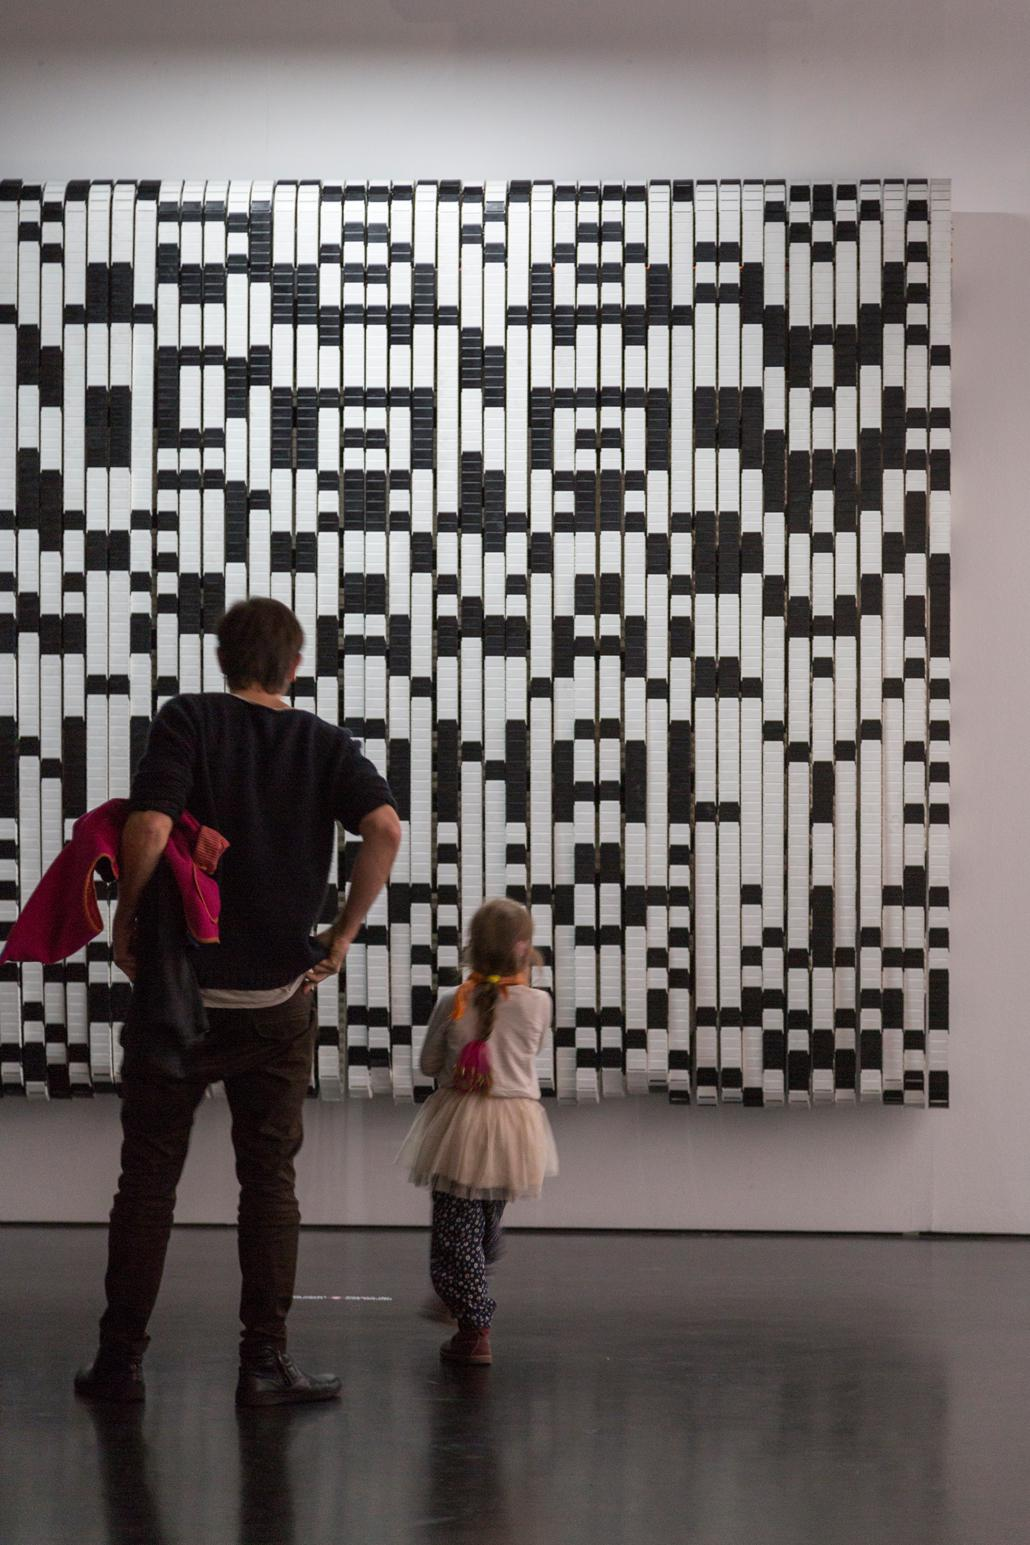 A QR code as picture on the wall